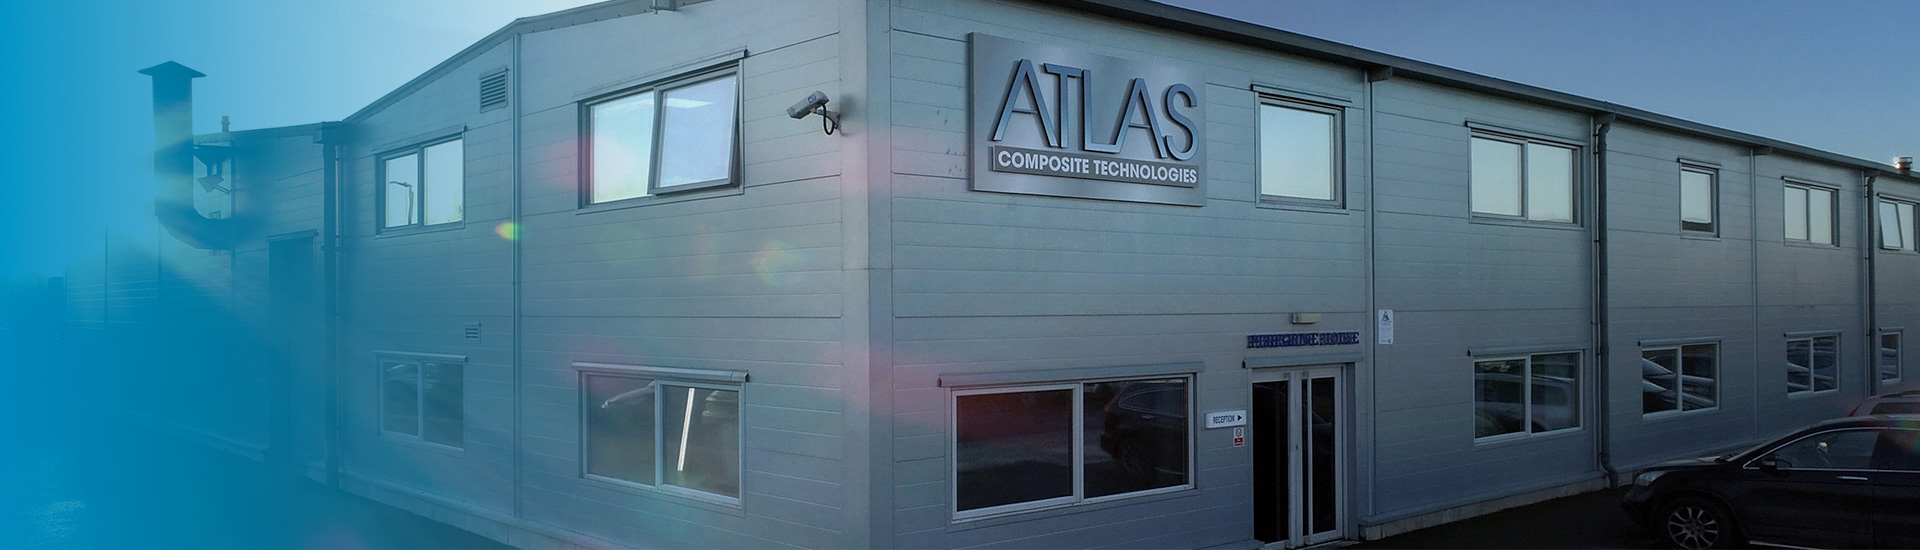 uk_composites_manufacturer